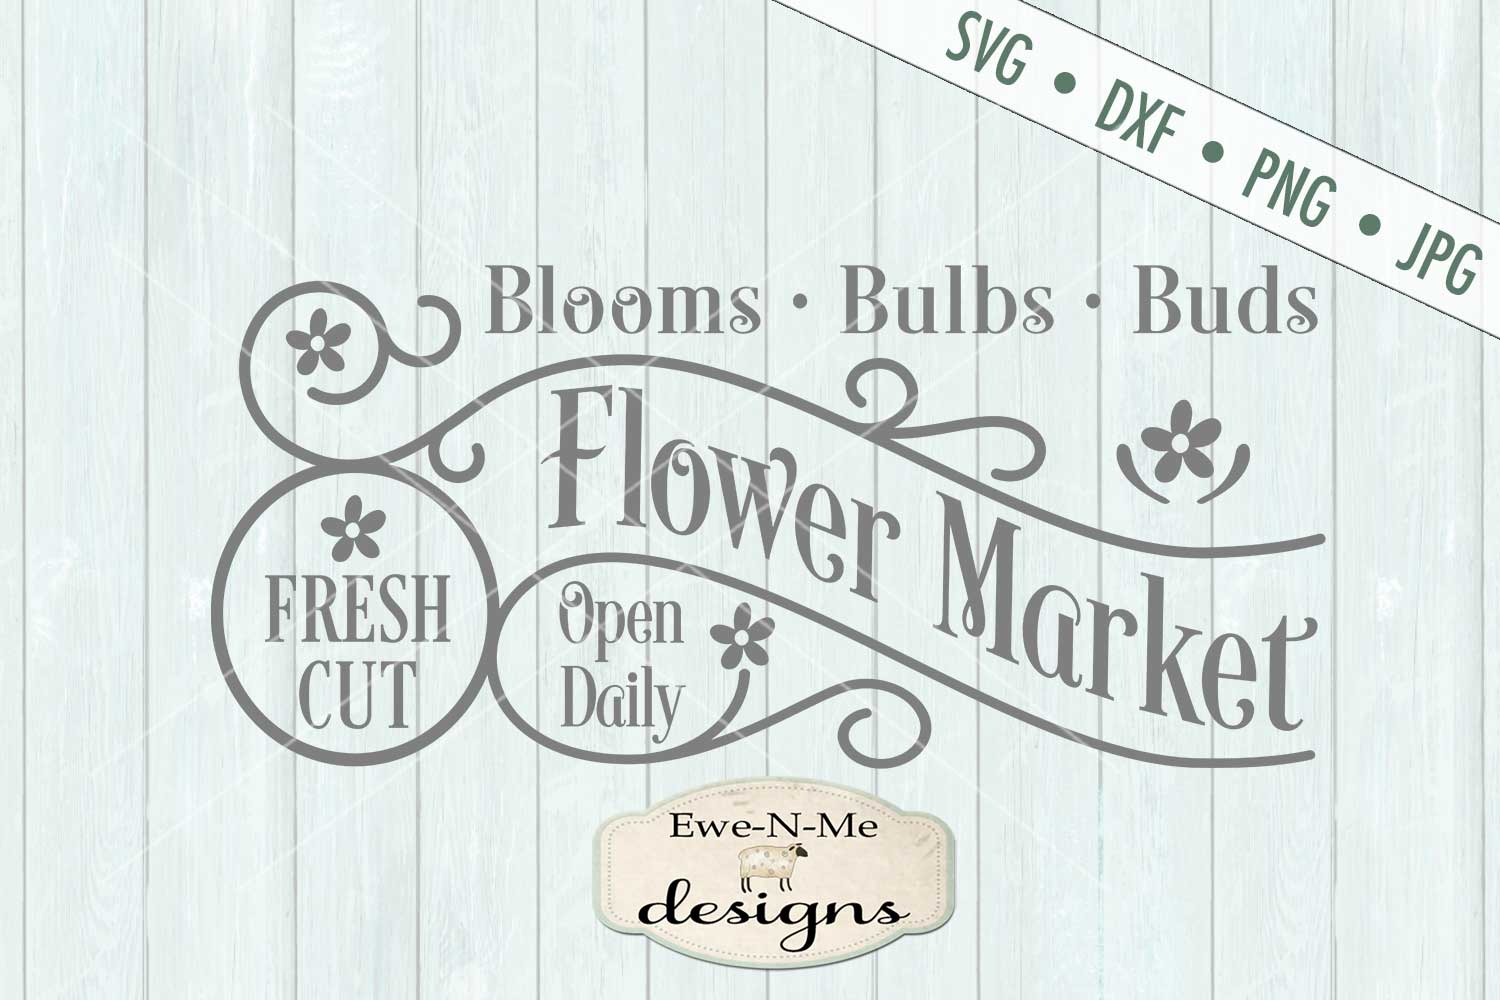 Fresh Cut Flower Market Spring SVG DXF Cut File example image 2